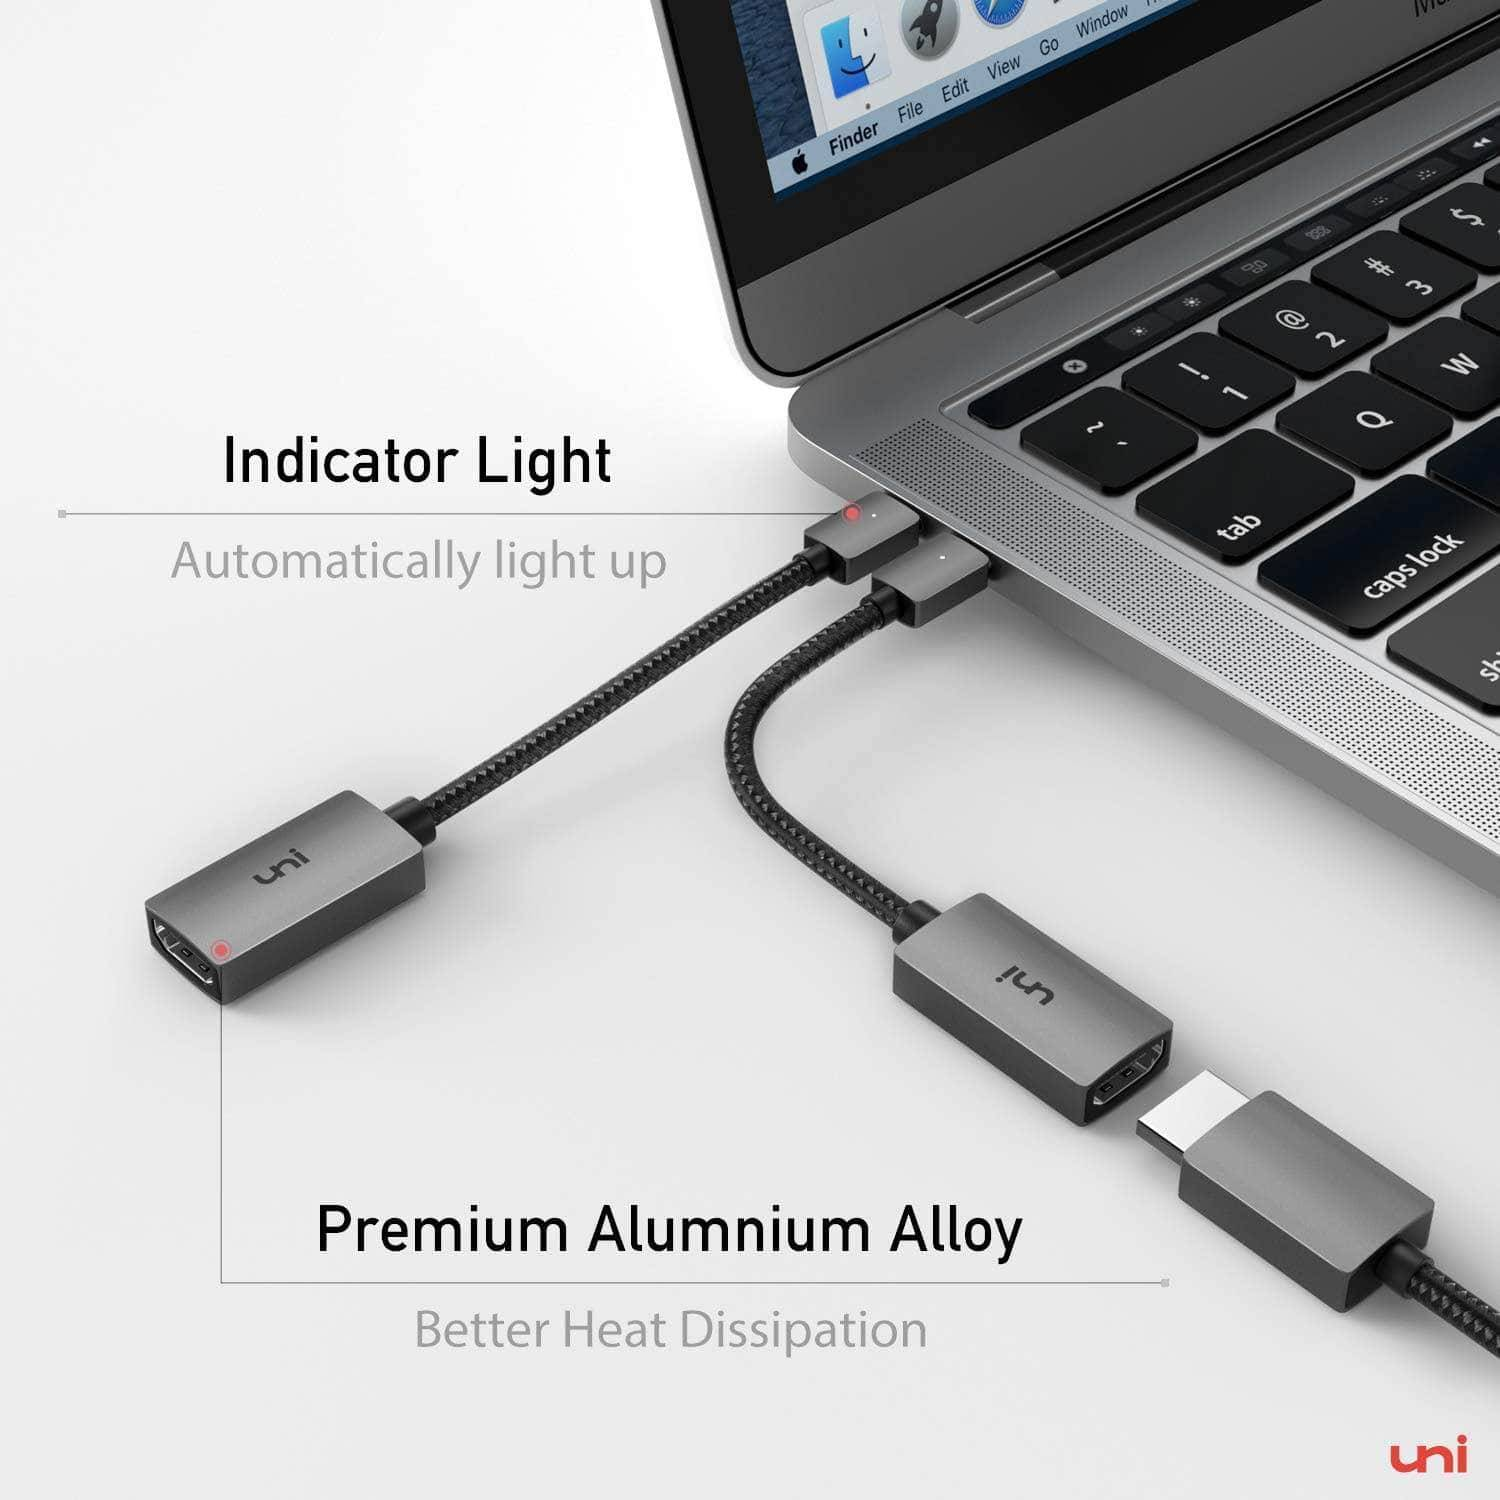 USB-C to HDMI Adapter 4K@30Hz - 2 Pack, usb c to hdmi adapter, type c to hdmi, usb type c to hdmi adapter, hdmi adapter for macbook